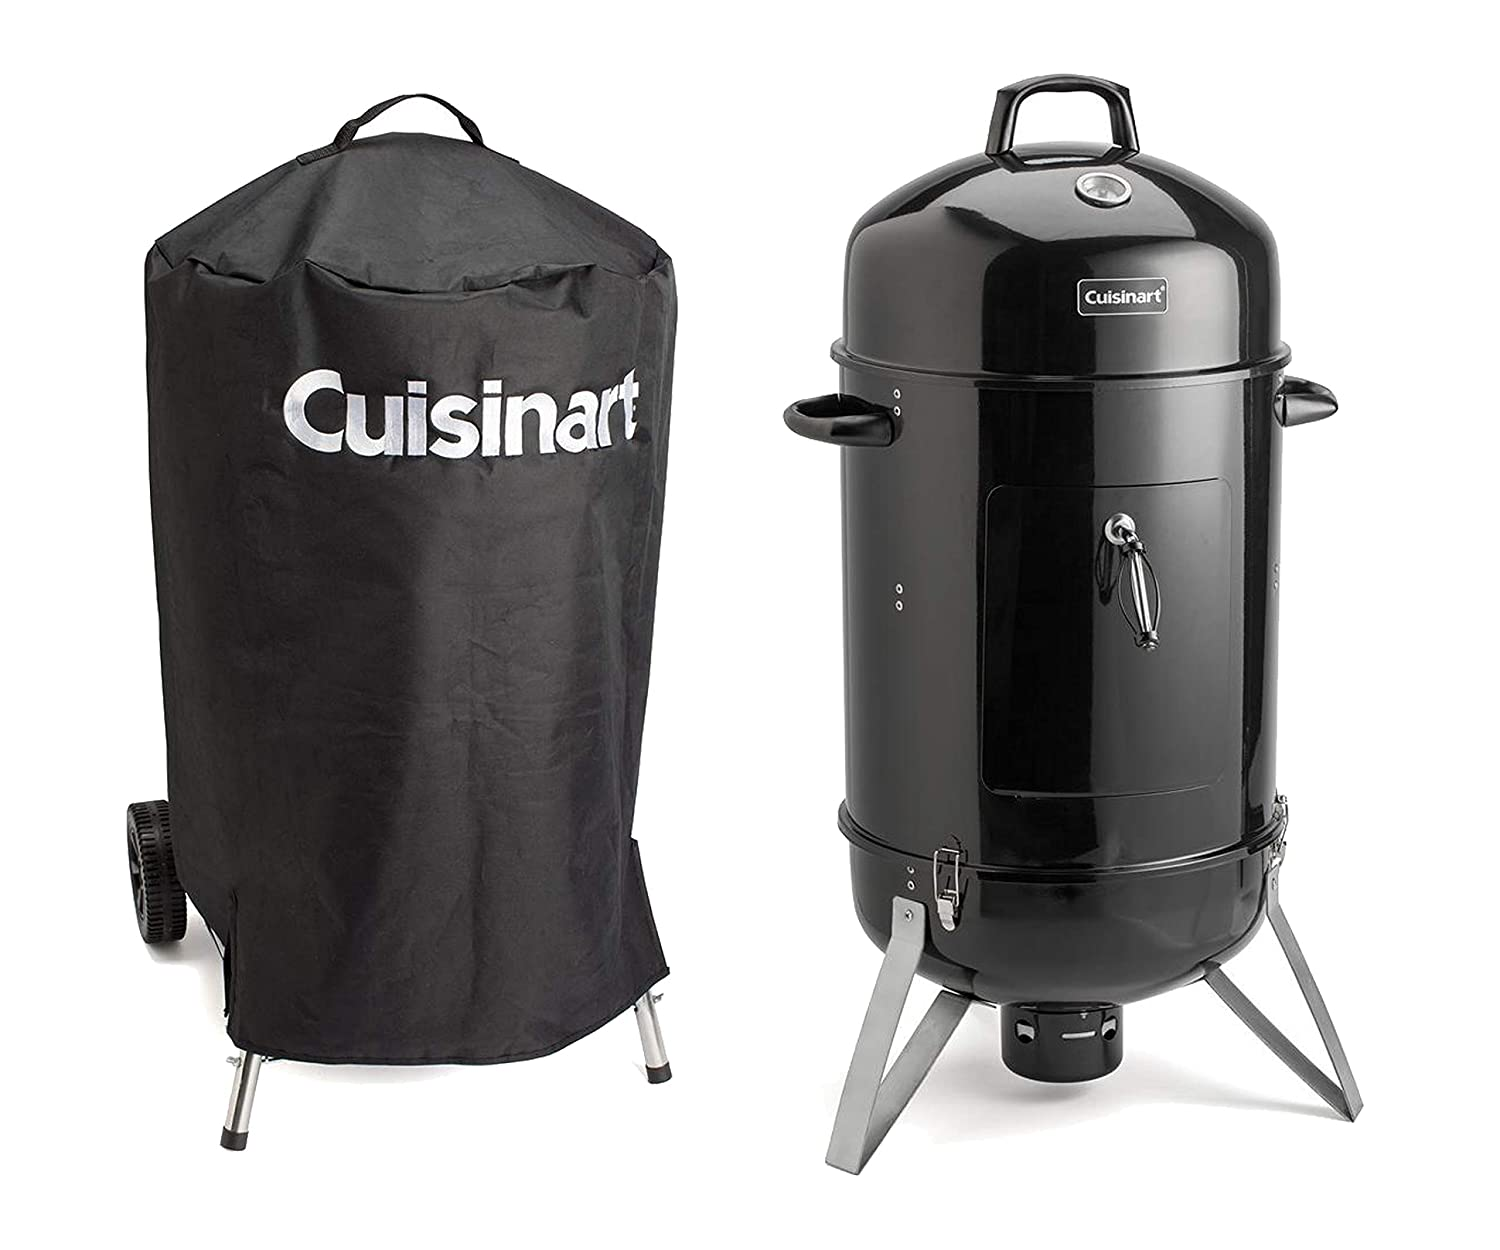 Cuisinart Vertical Charcoal Smoker and Grill with Stainless Steel Cooking Racks and Porcelain-enameled Water Bowl, 16-Inch bundle with Universal Nylon Fabric Kettle Cover with Velcro Straps